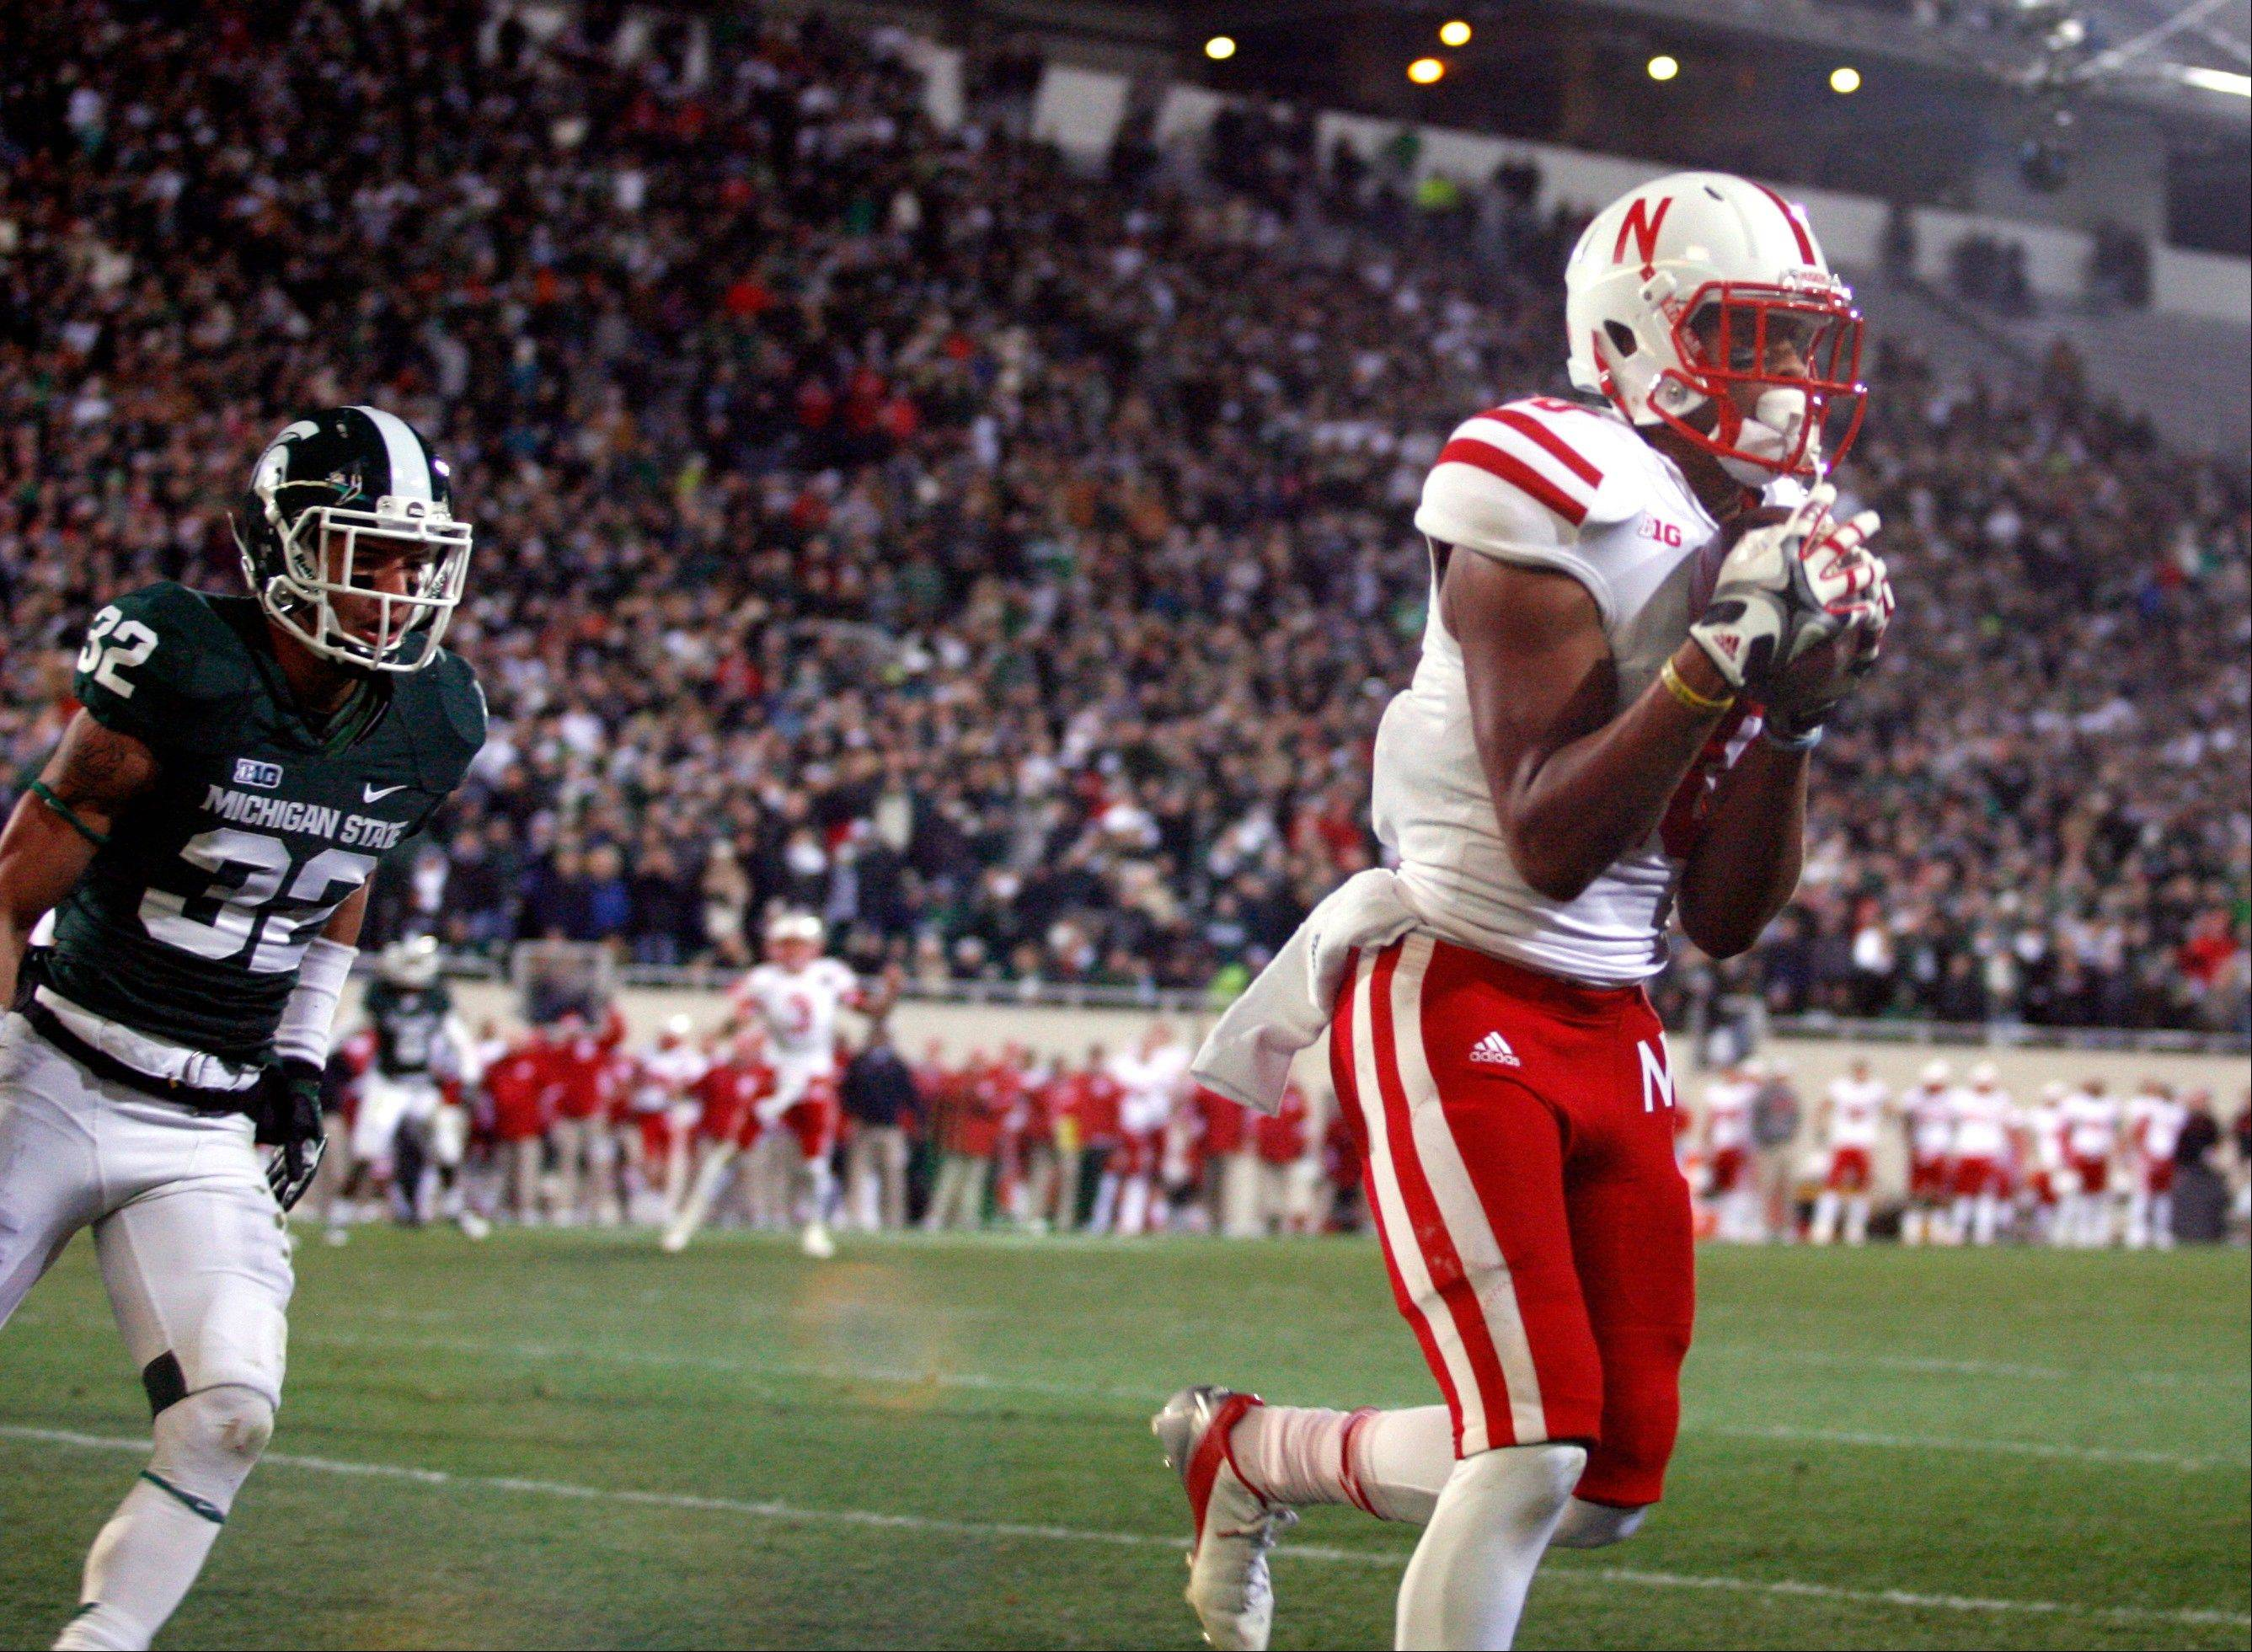 Nebraska�s Jamal Turner, right, catches the game-winning touchdown pass against Michigan State�s Mitchell White with seconds remaining in the fourth quarter Saturday in East Lansing, Mich. Nebraska won 28-24.